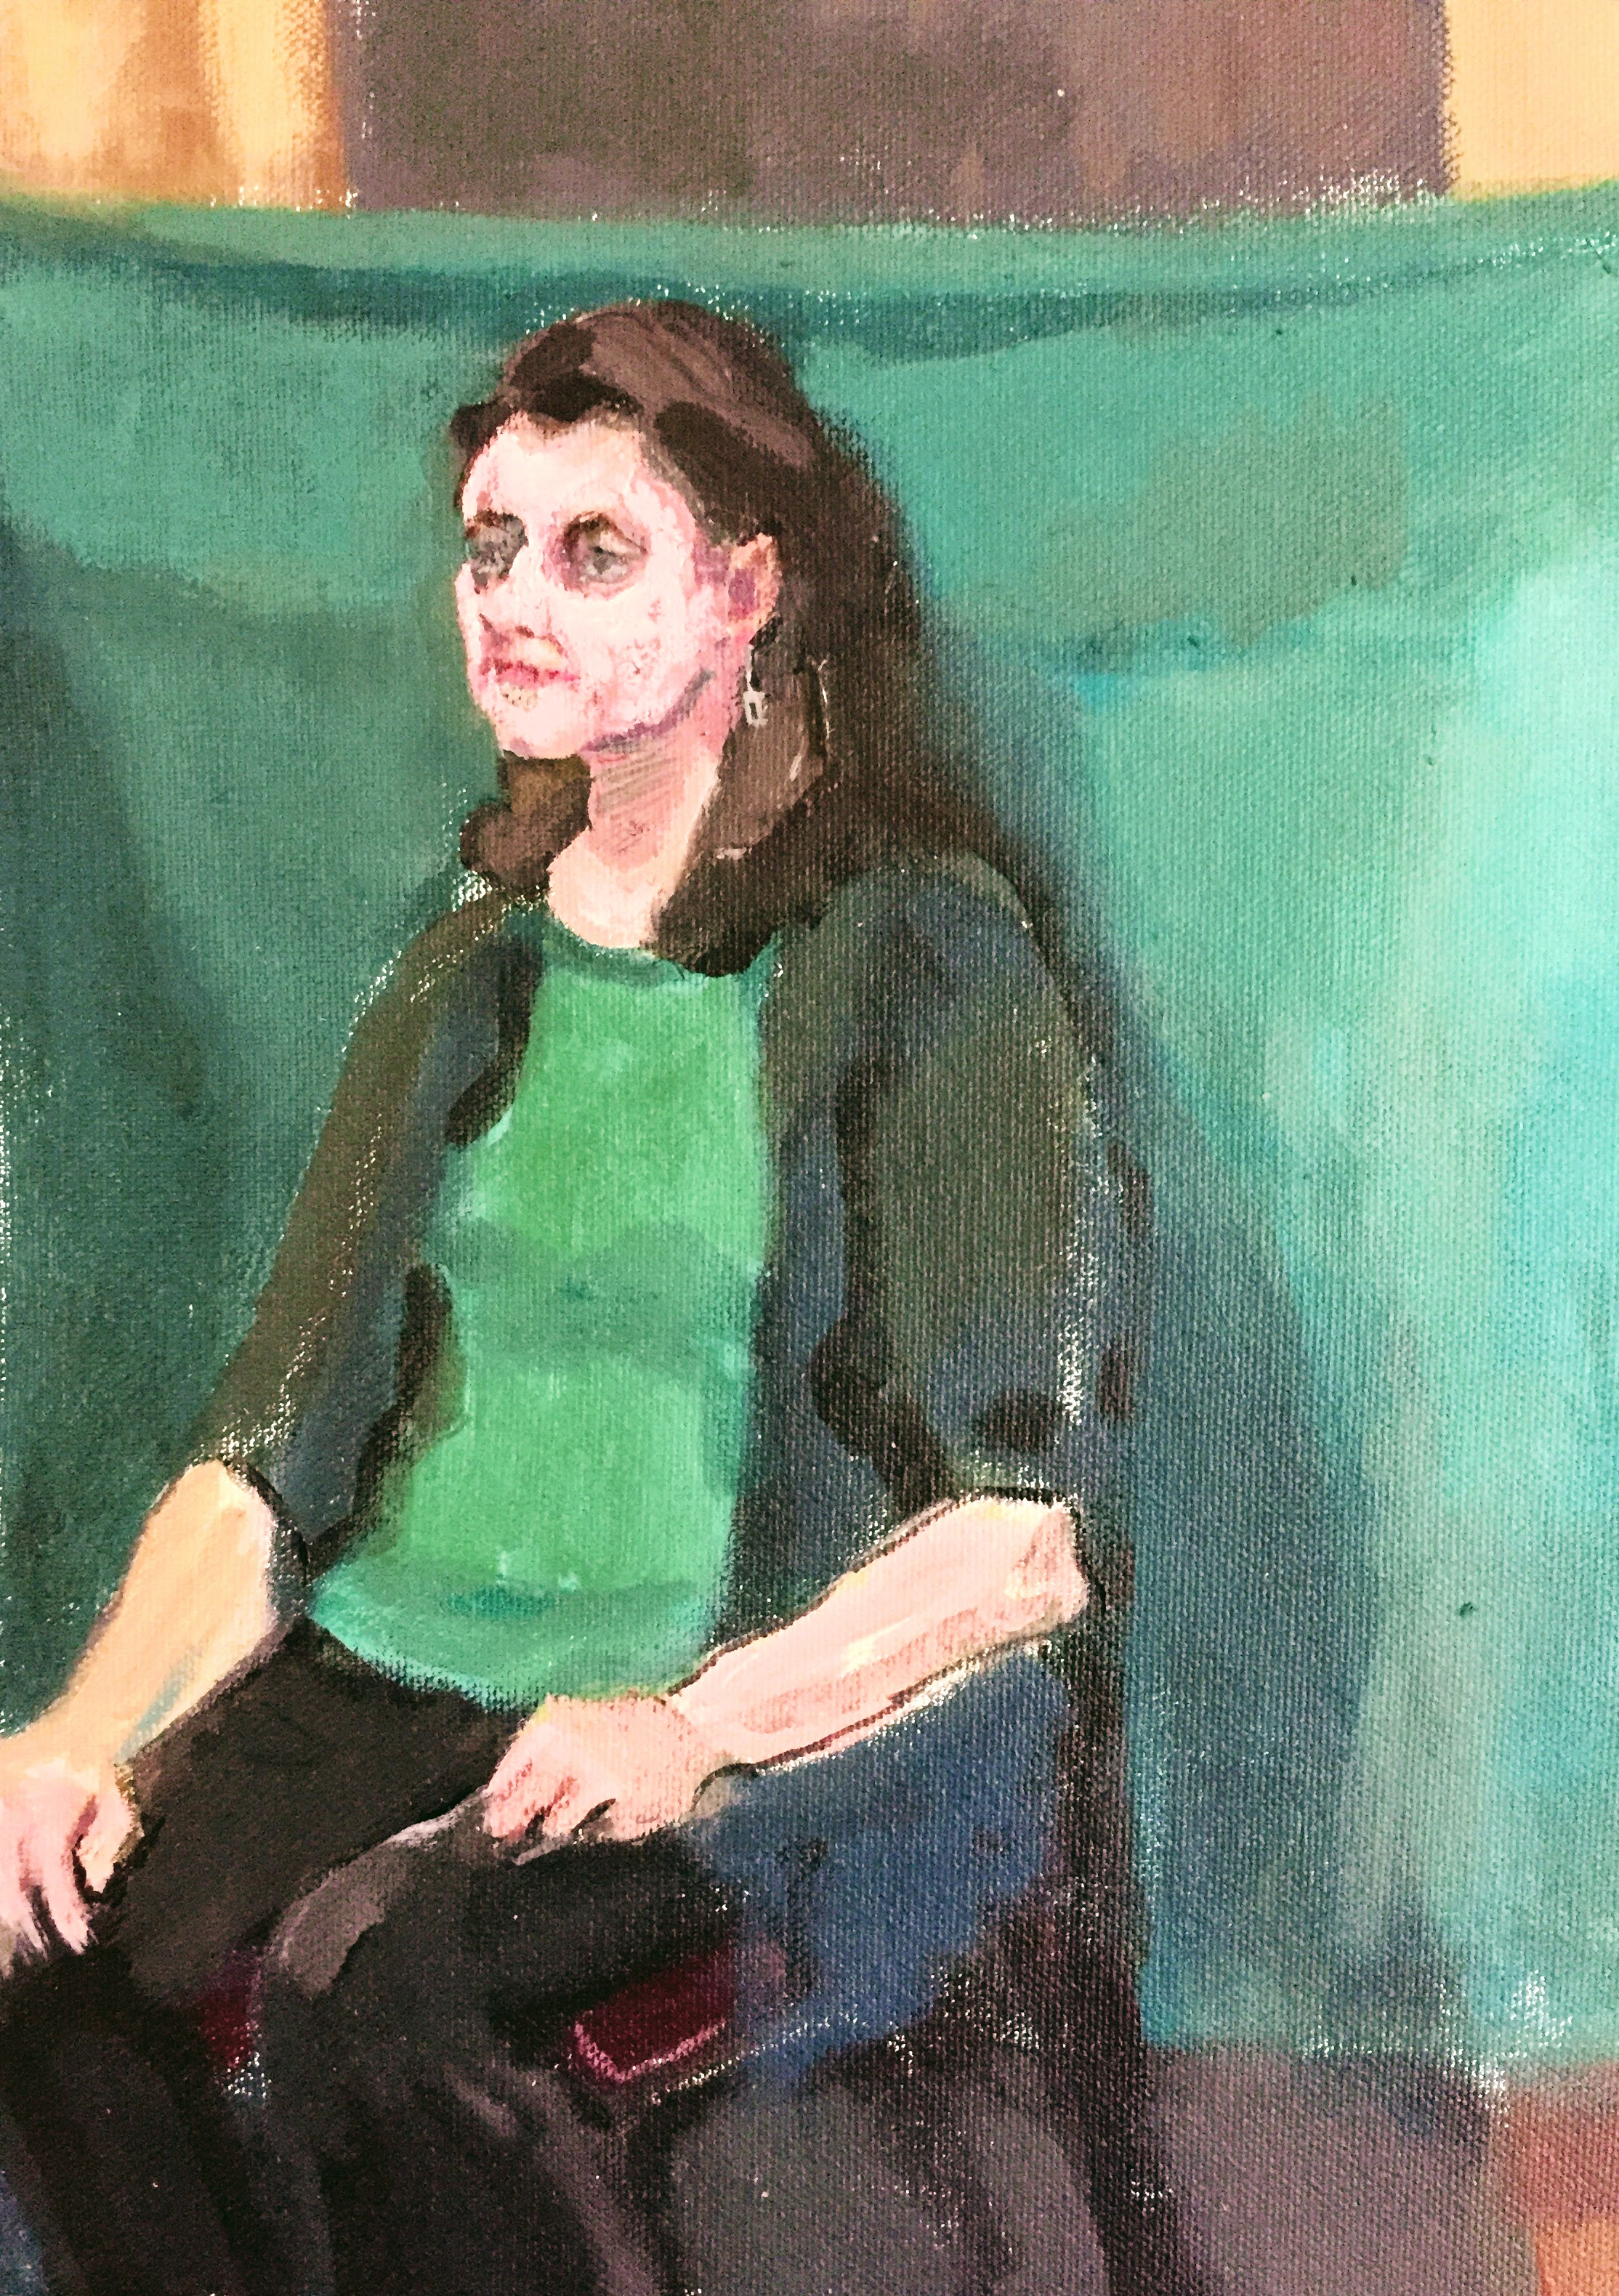 Green Cloth   Acrylics on canvas  by Sally Hyman